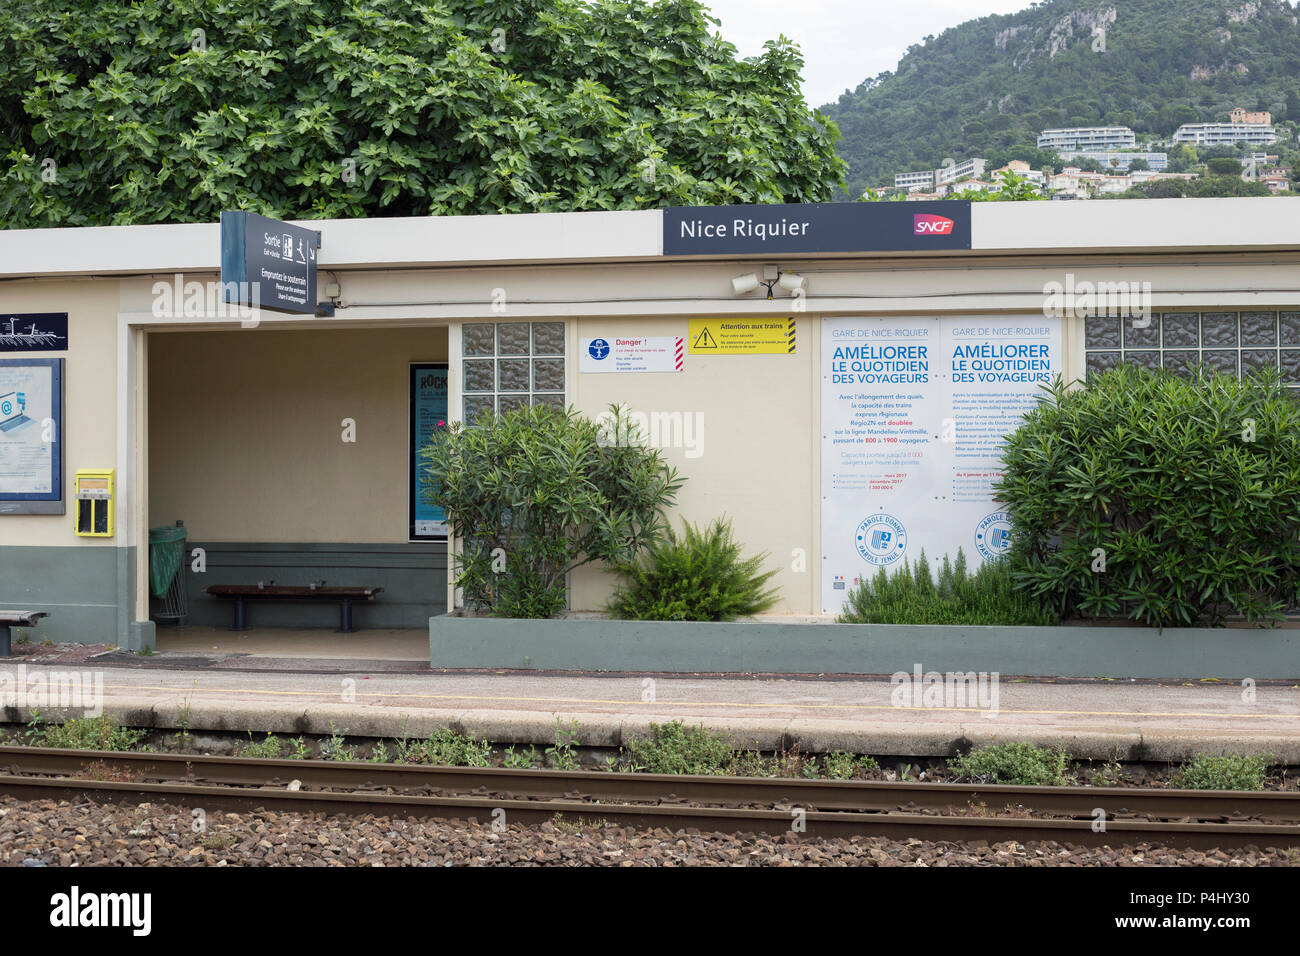 Nice, Cote D' Azur, France, June 2018, A view of Nice Riquer Train station - Stock Image